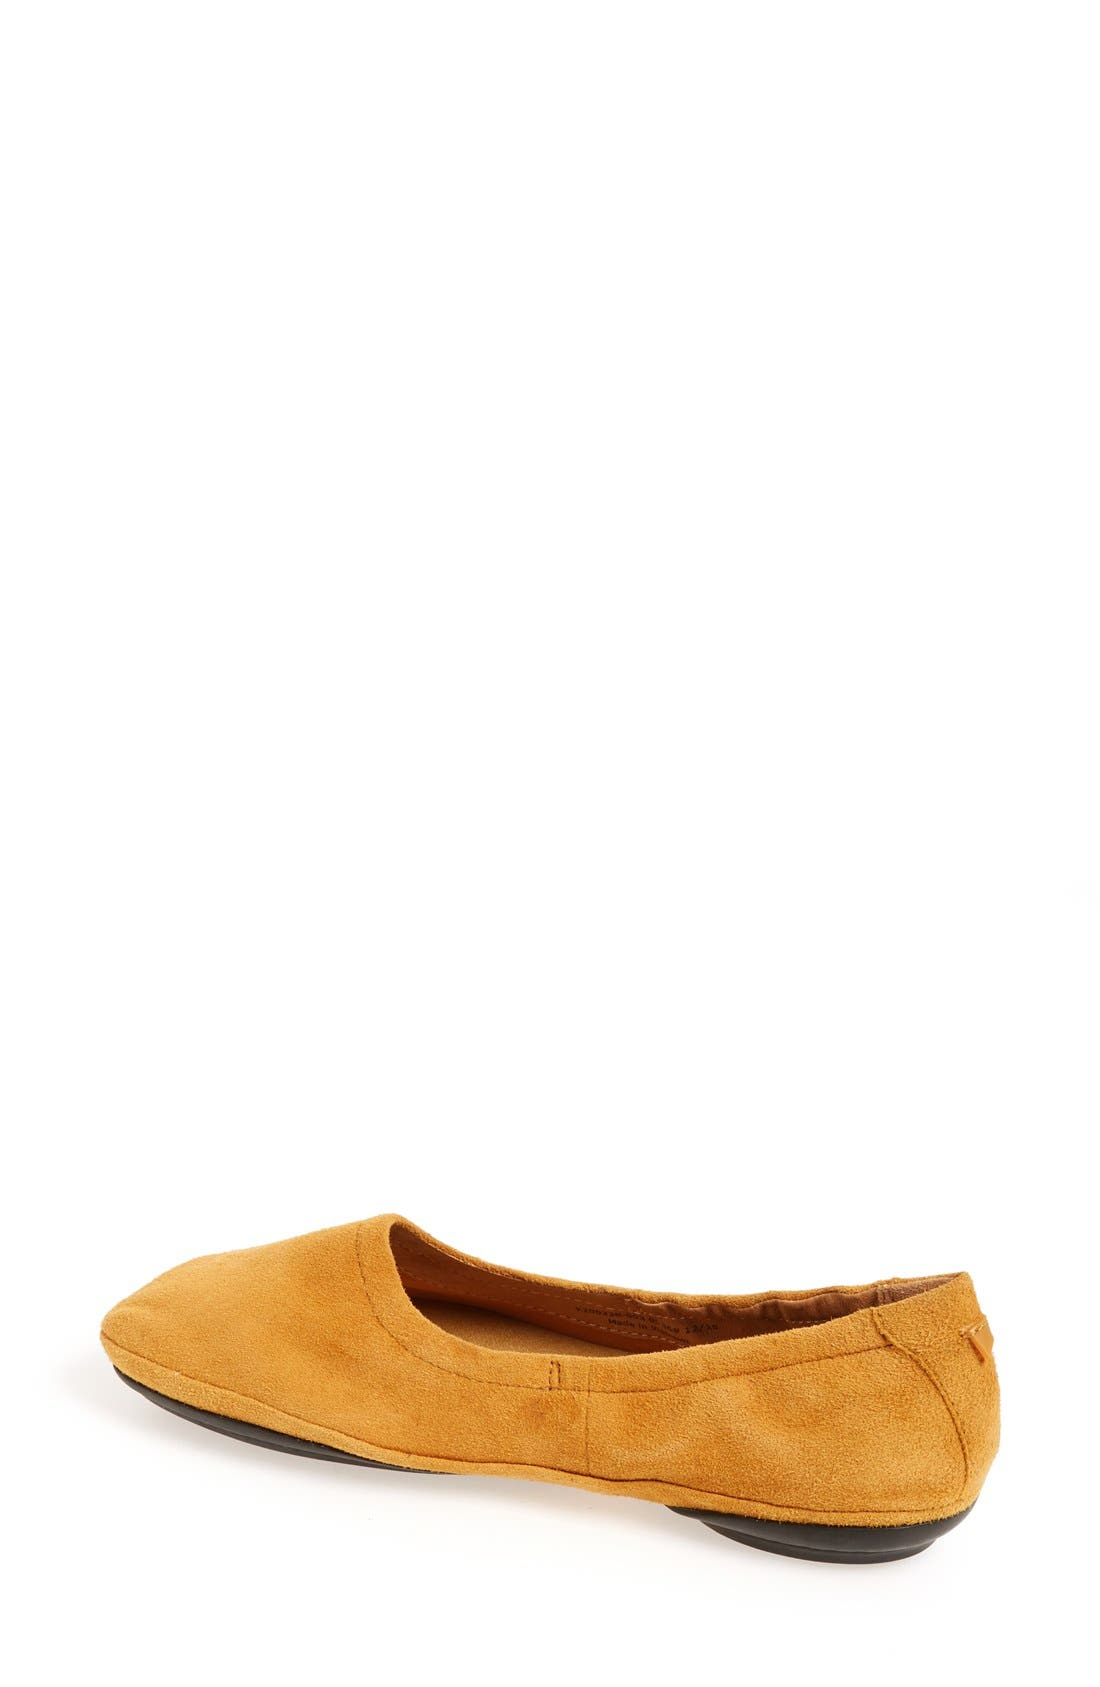 'Right Nina' Ballet Flat,                             Alternate thumbnail 2, color,                             Mustard Suede